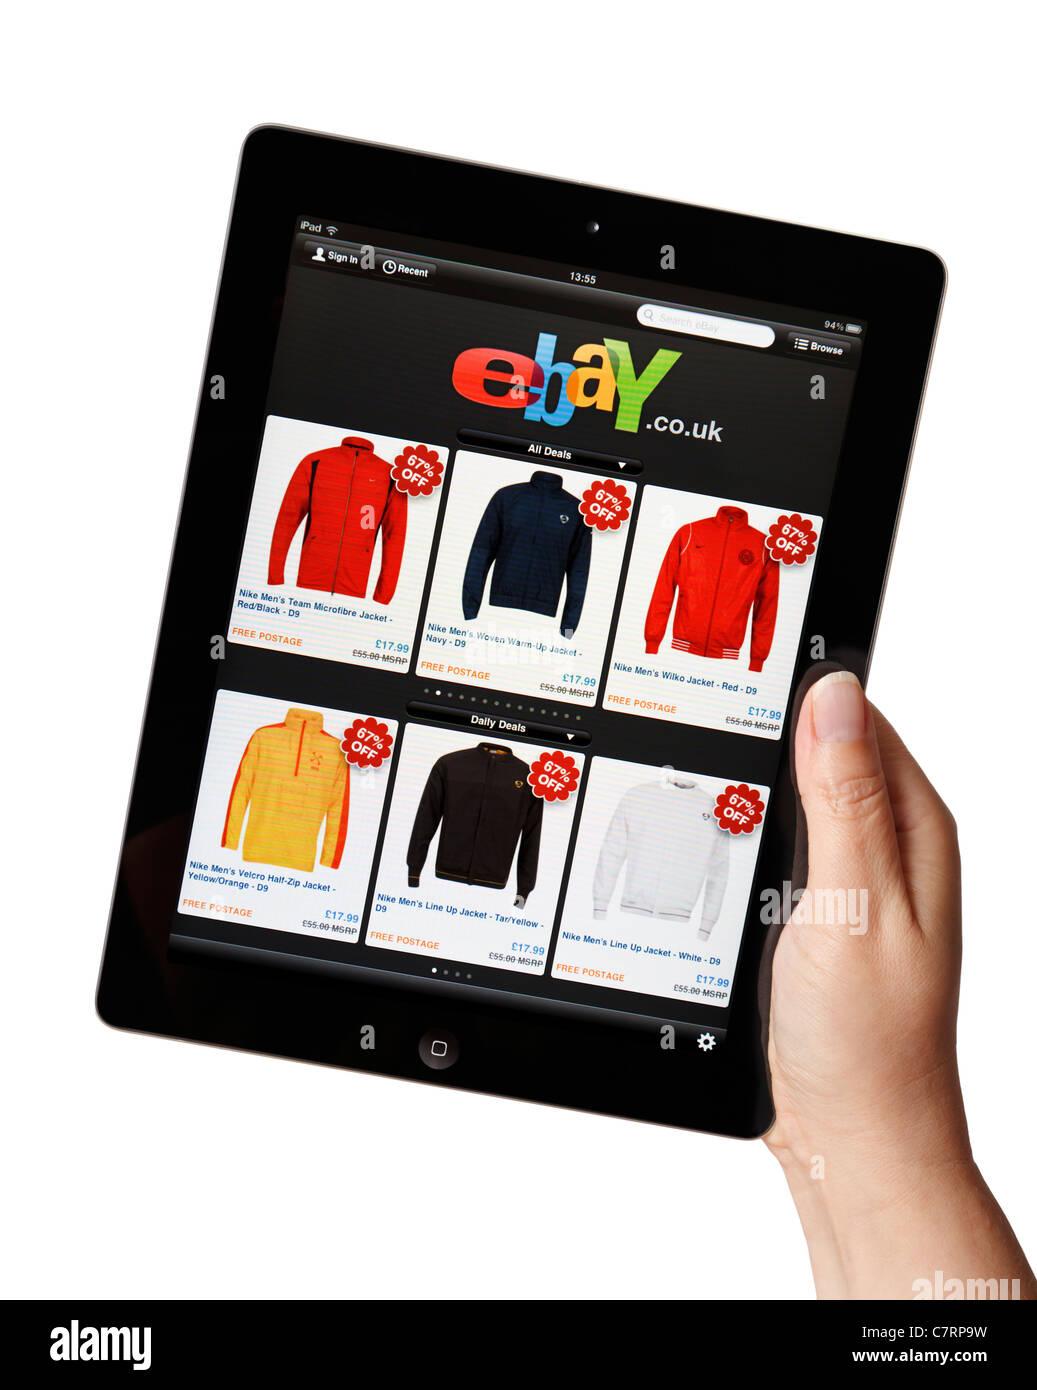 Female Hand Online Shopping Holding Ipad Showing The Ebay Store App Stock Photo Alamy